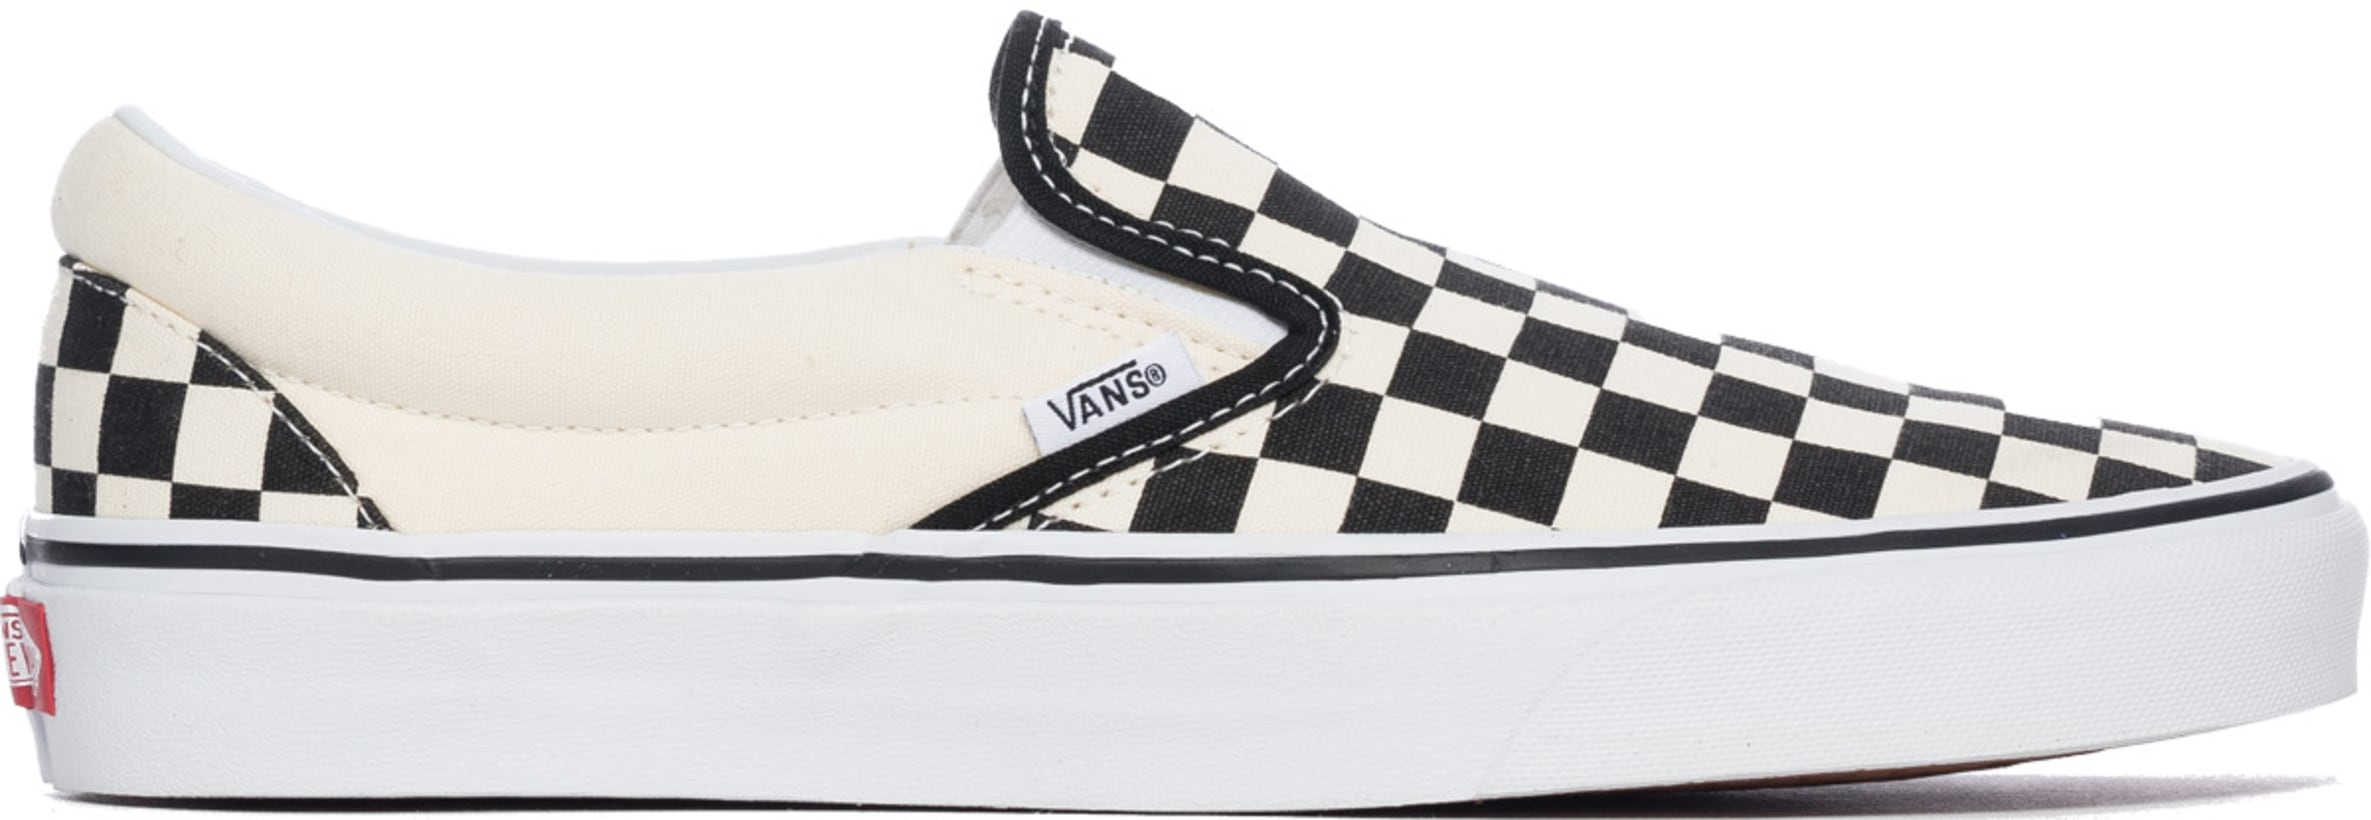 Vans  Checkerboard Classic Slip-On - Black Off White Check  9c5bb3956